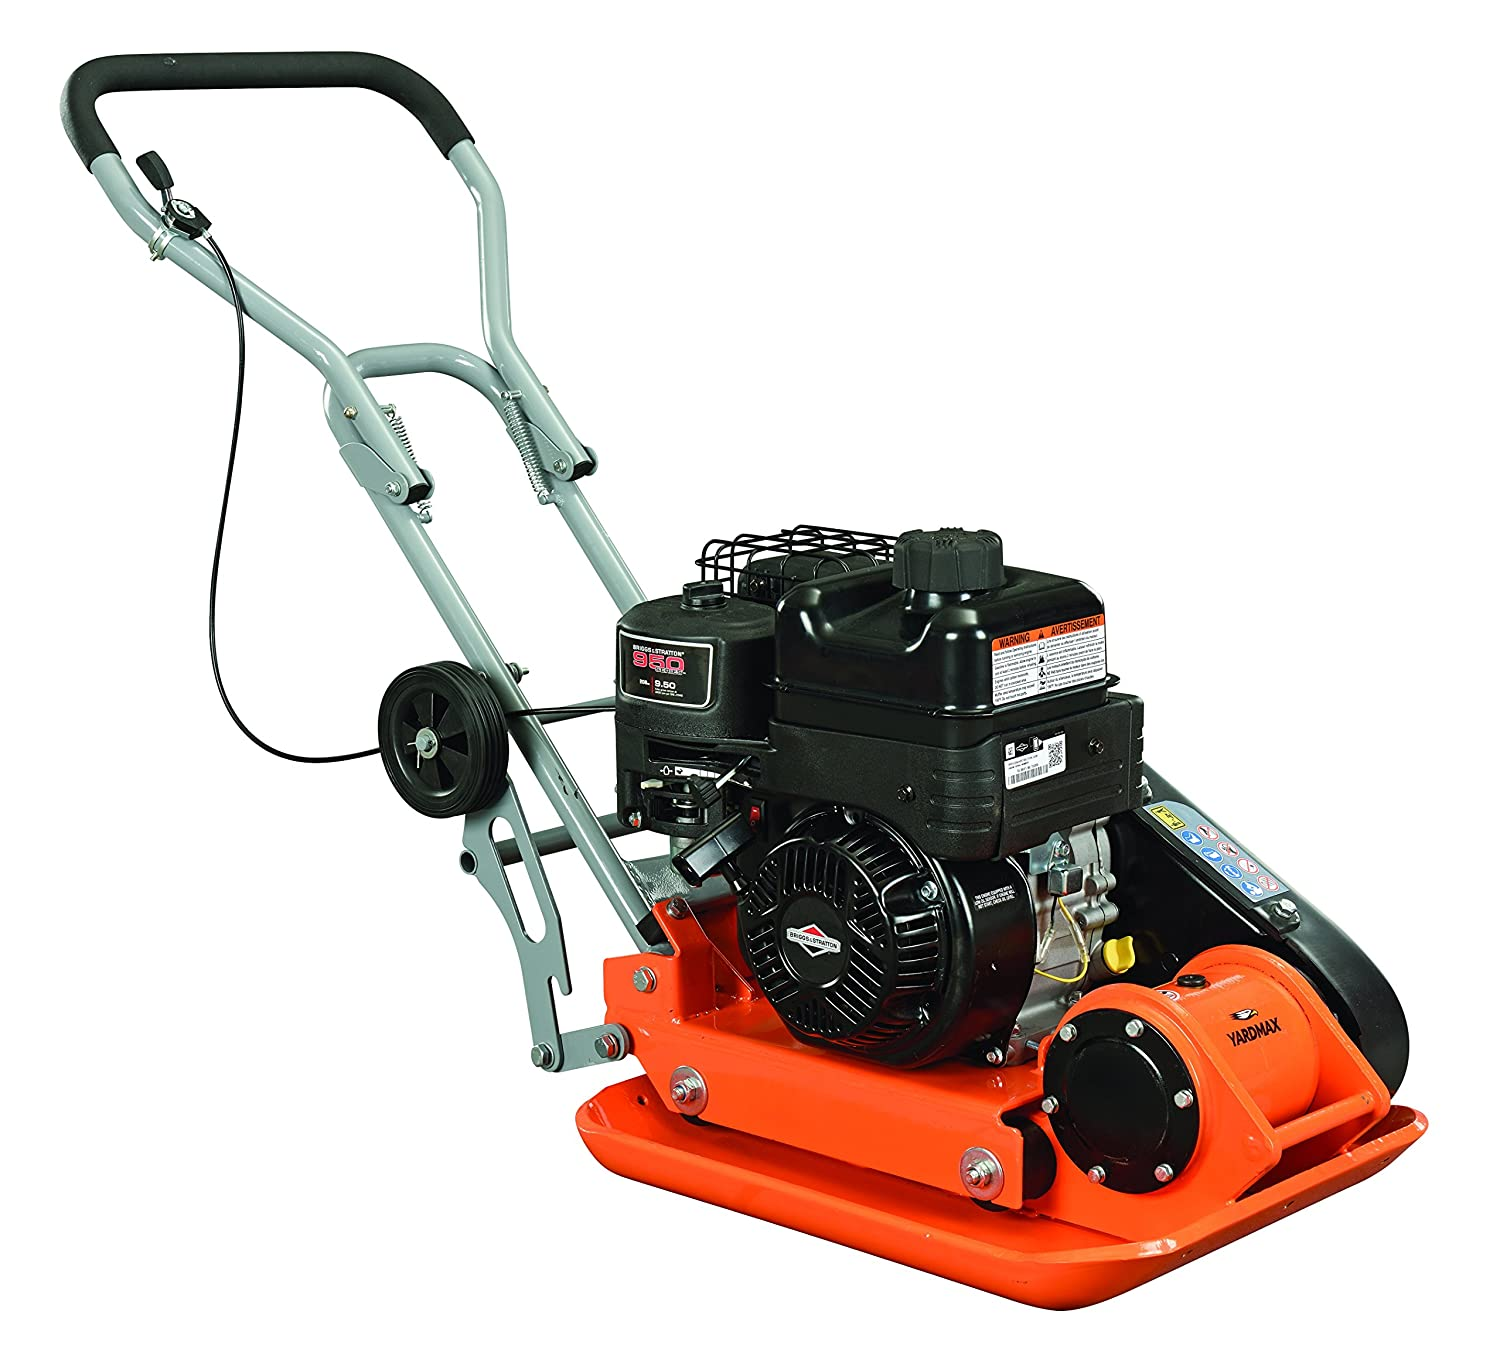 YARDMAX YC1390 3000 lb. Compaction Force Plate Compactor, 6.5 hp, 208cc, 5500 BPM, Briggs & Stratton